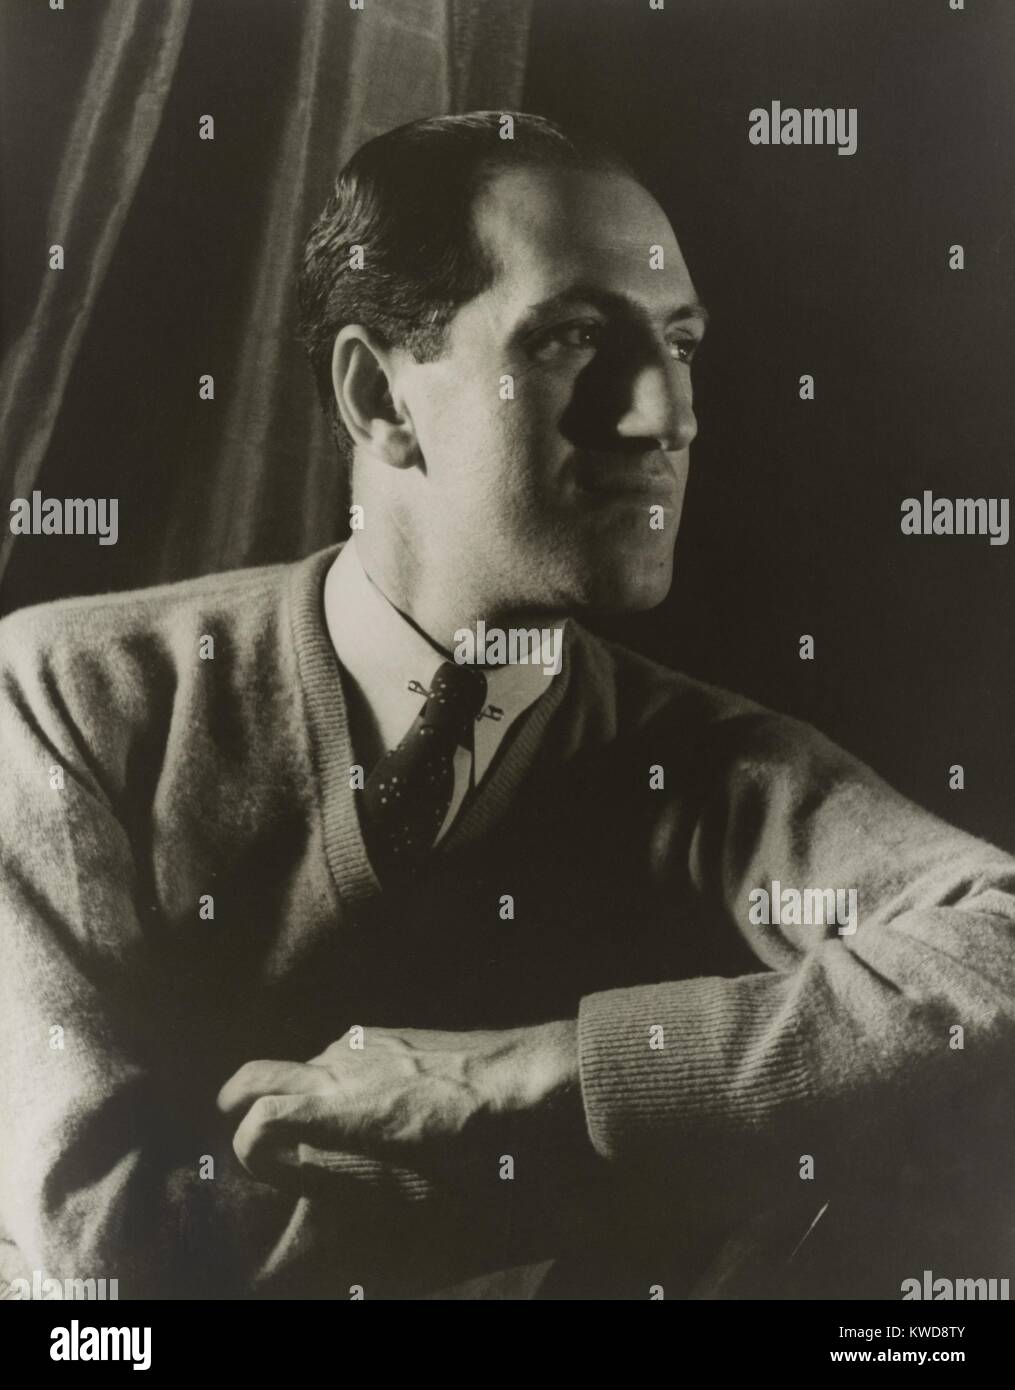 George Gershwin, American composer, portrait by Carl Van Vechten, March 28, 1937. His music was featured in several - Stock Image